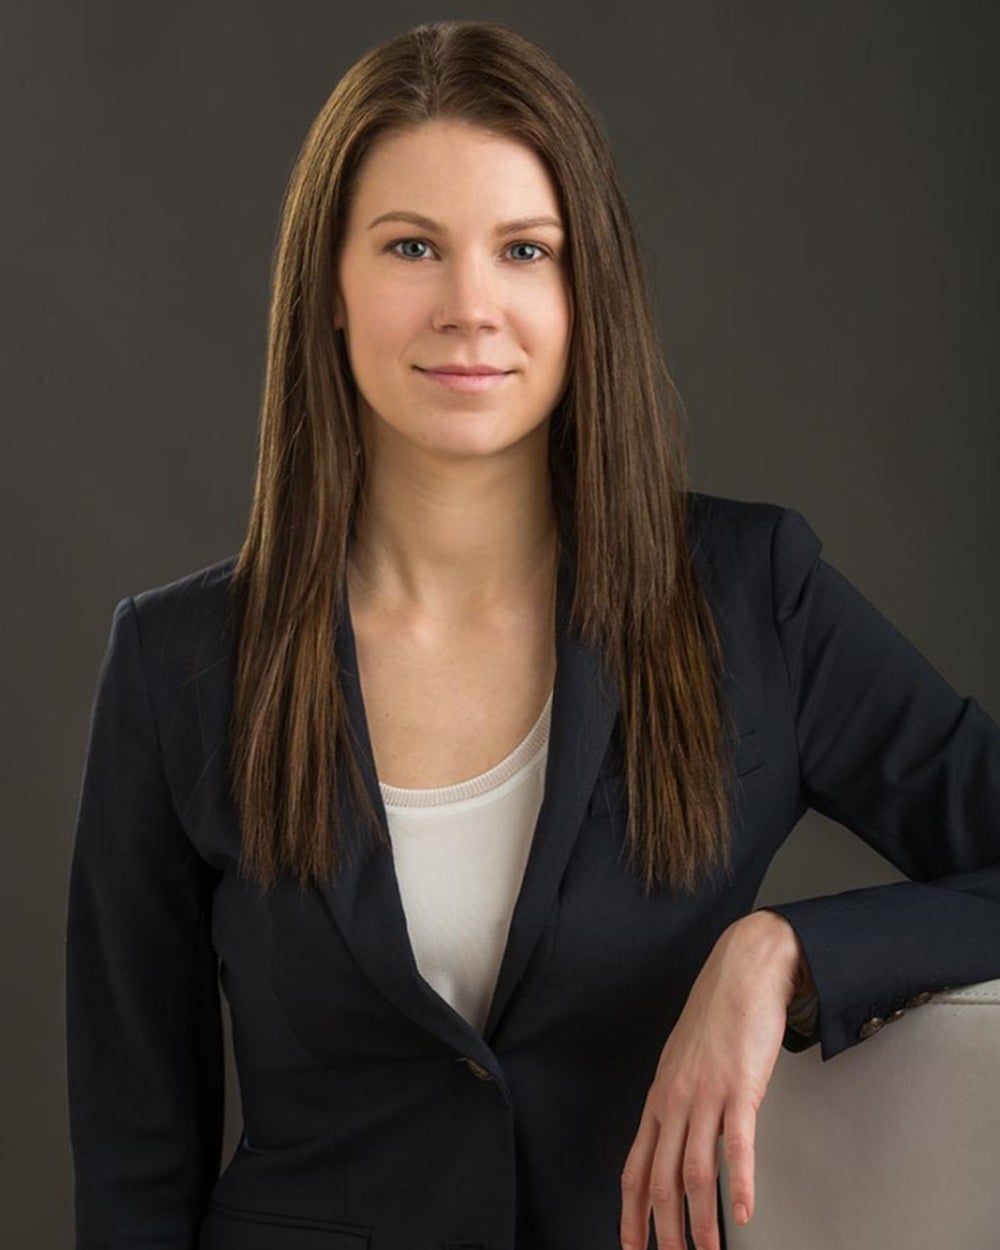 Brittney Beebe a Paralegal at Hanson & Co.